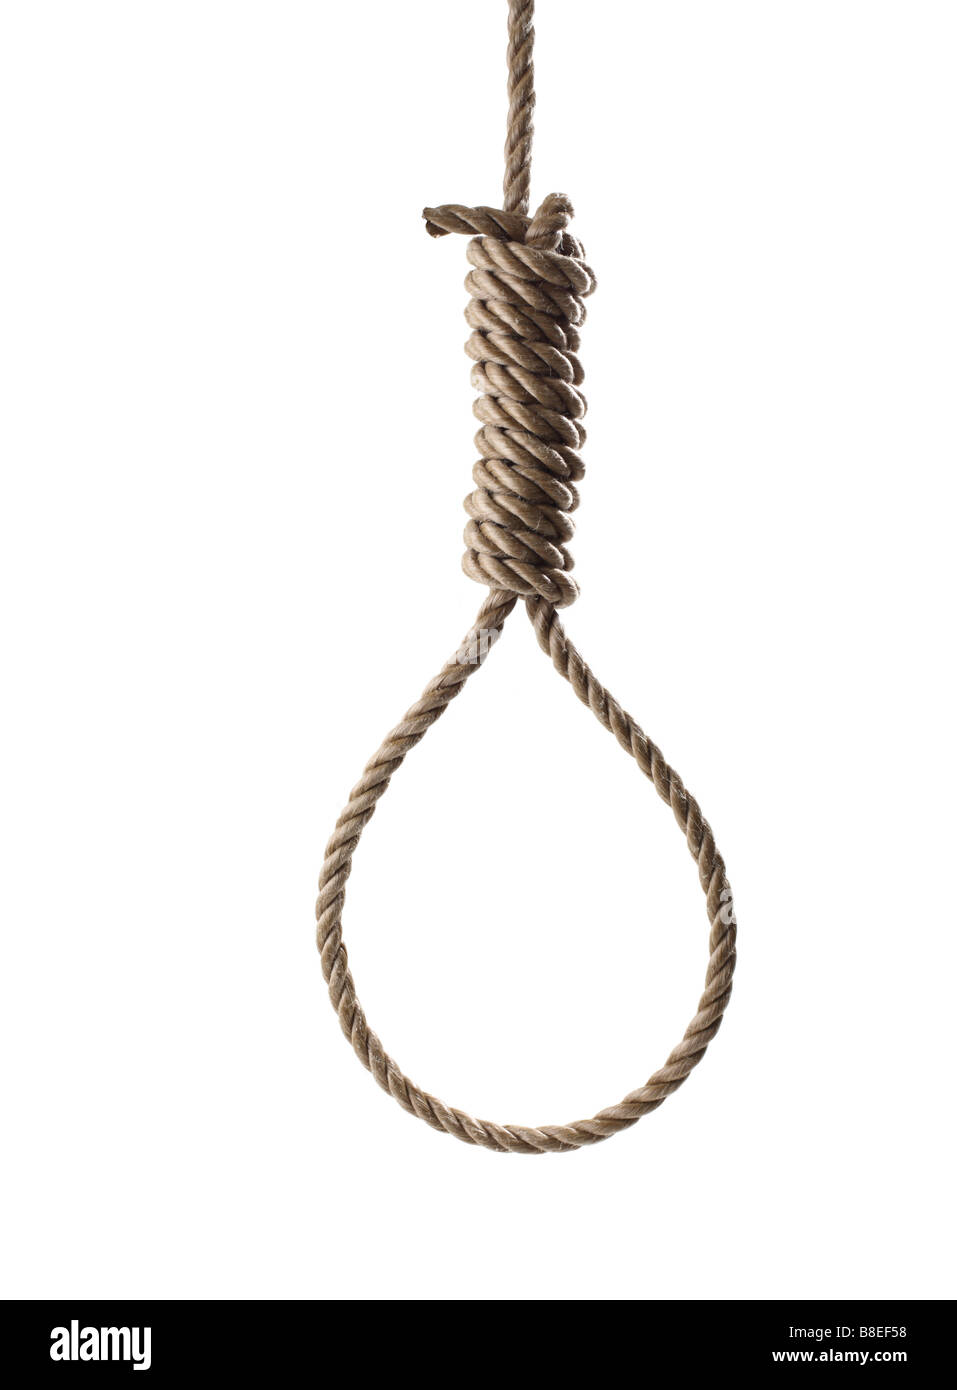 Rope in shape of a Hangman's Noose - Stock Image